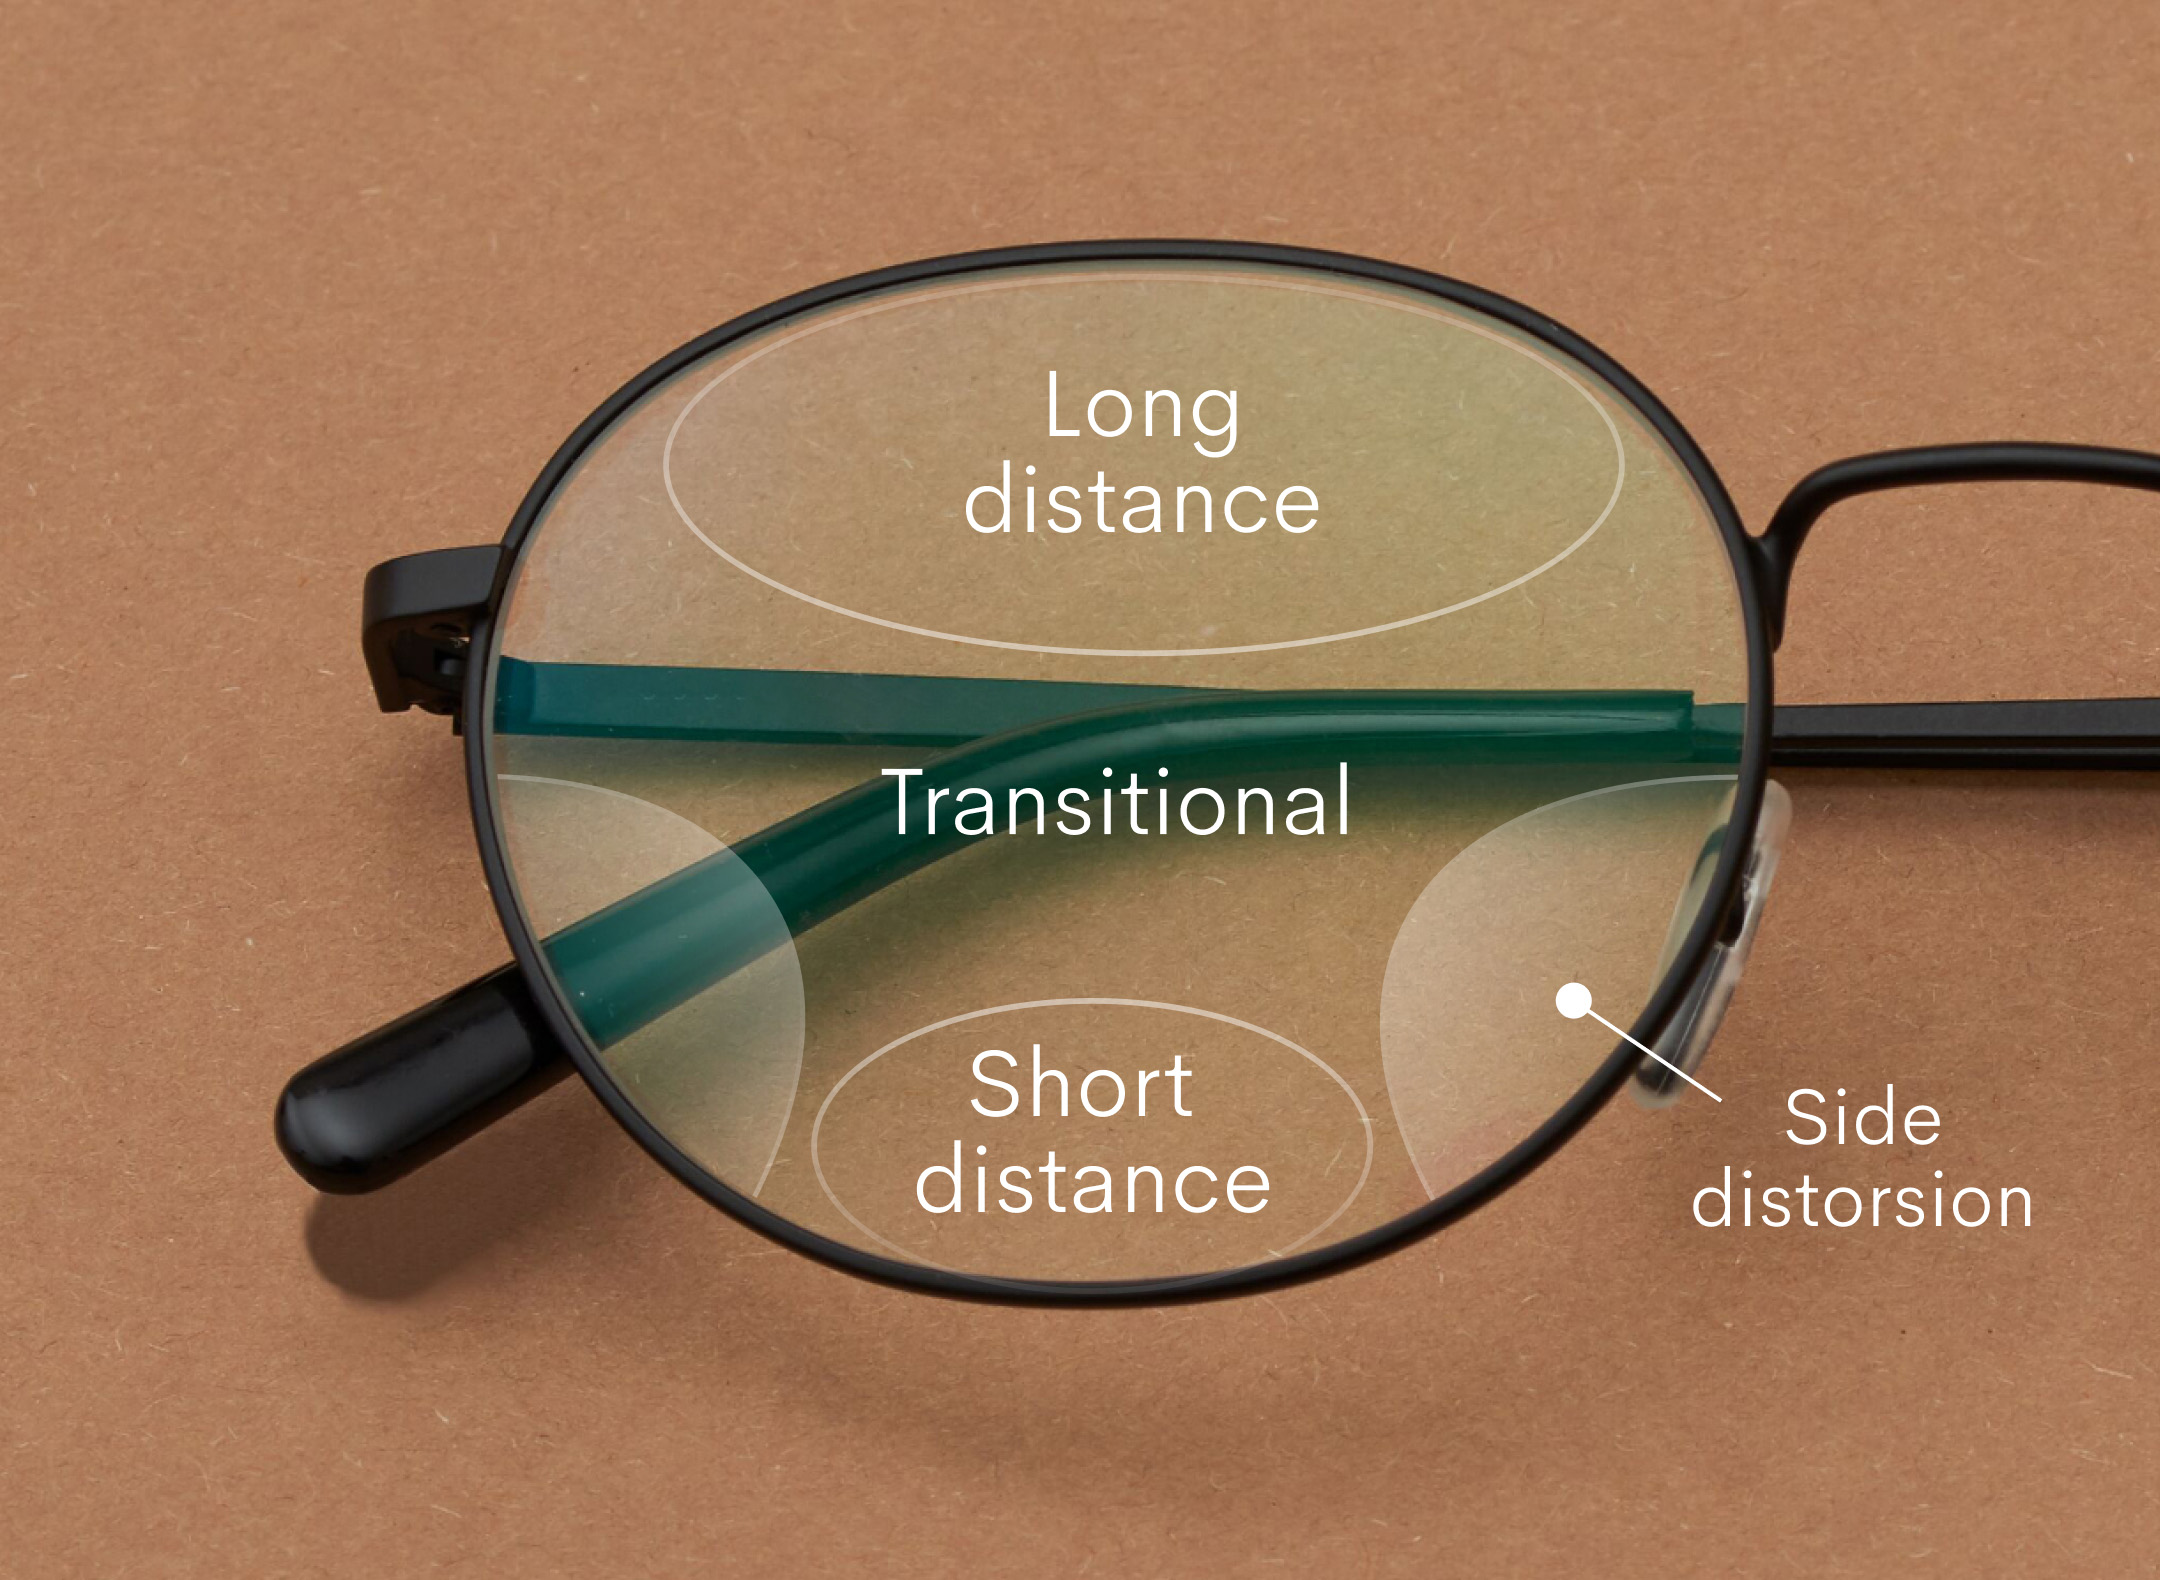 varifocal-distange-infographic